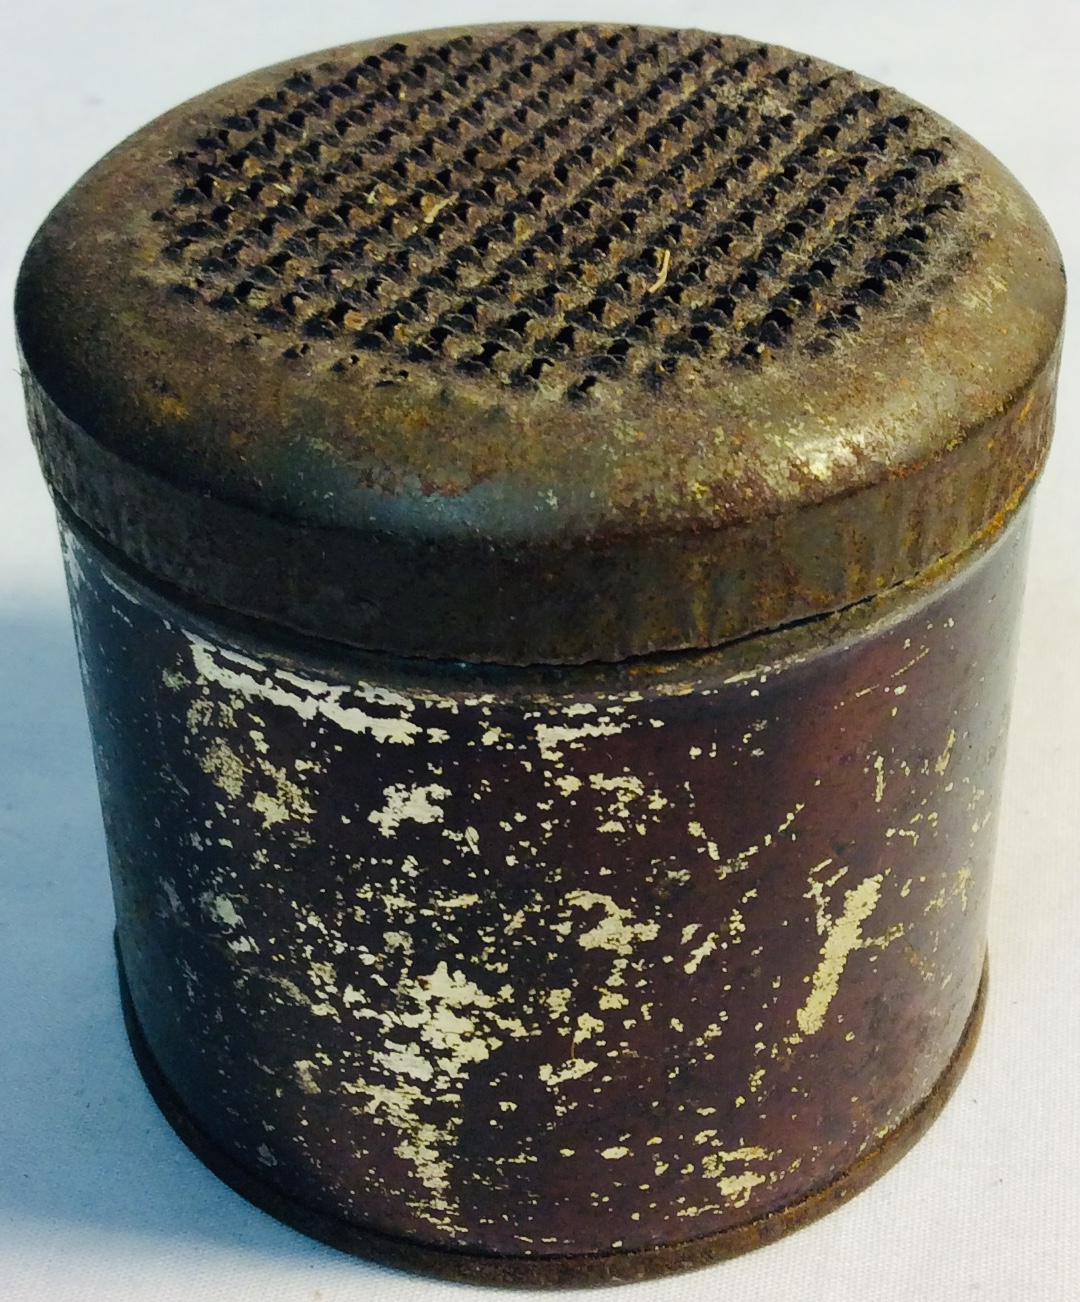 Aged herbs shaker for ritual